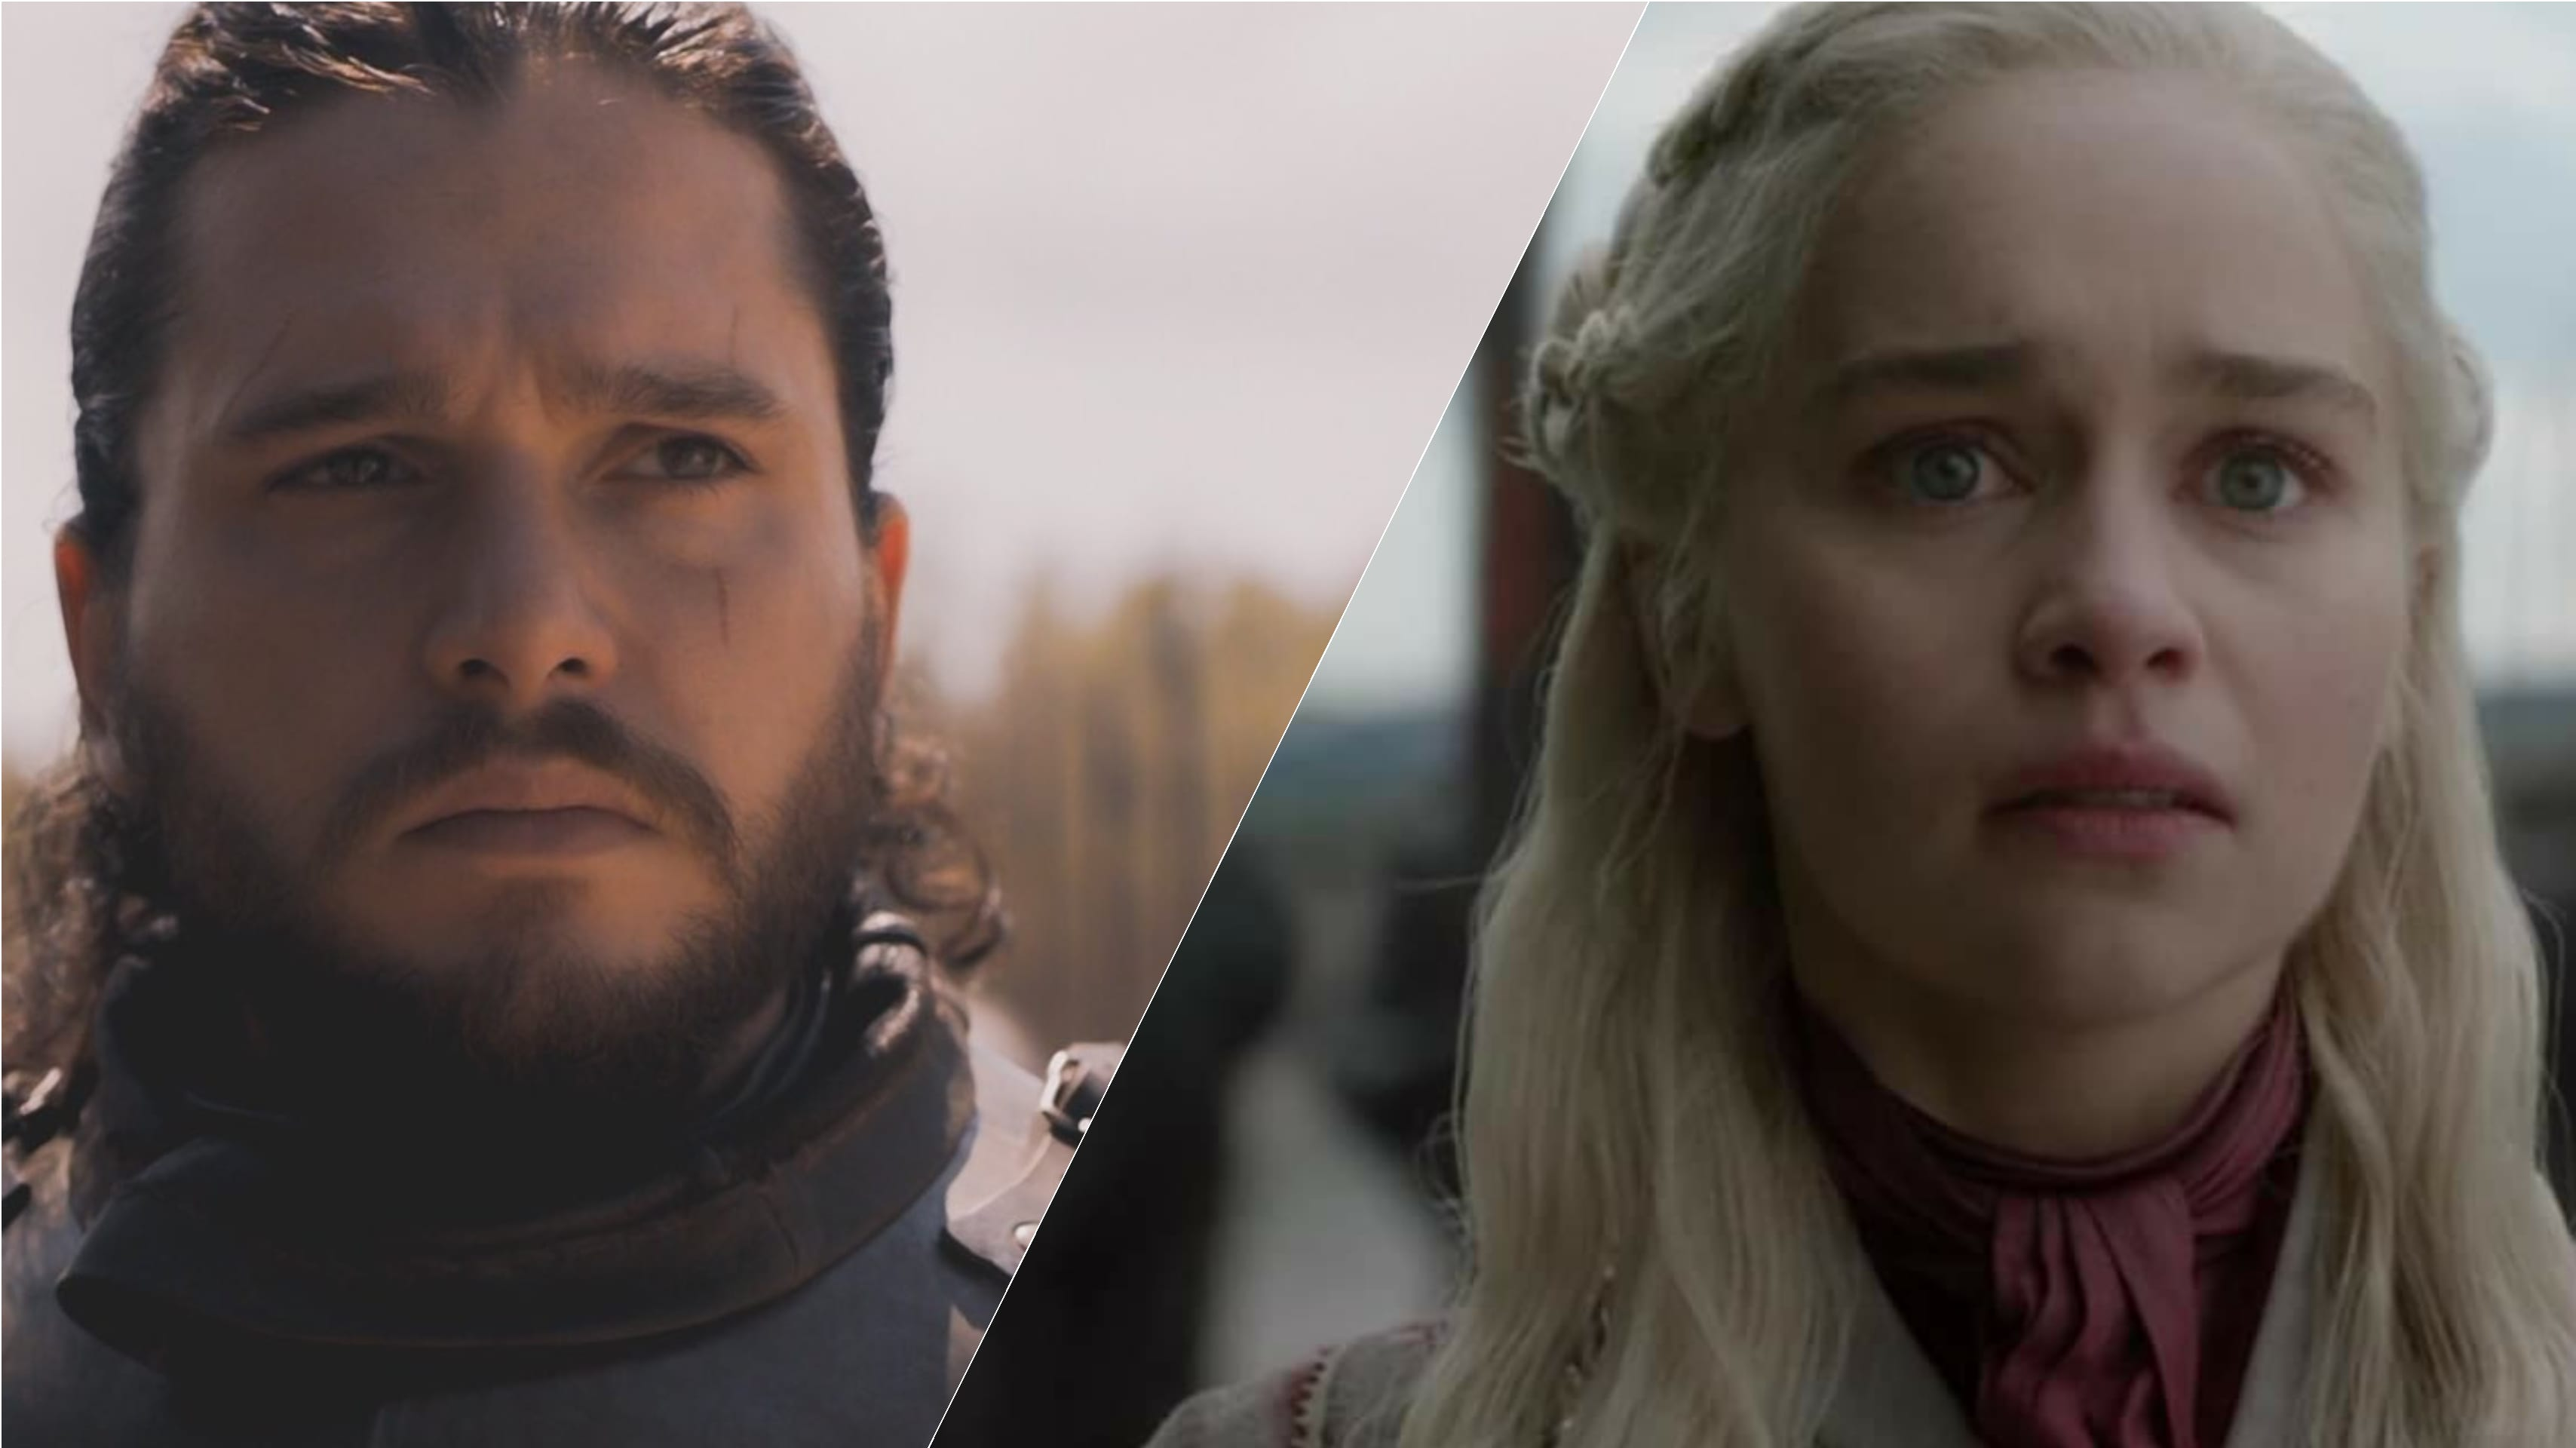 Game of Thrones Season 8 Episode 5 and 6 Leaks